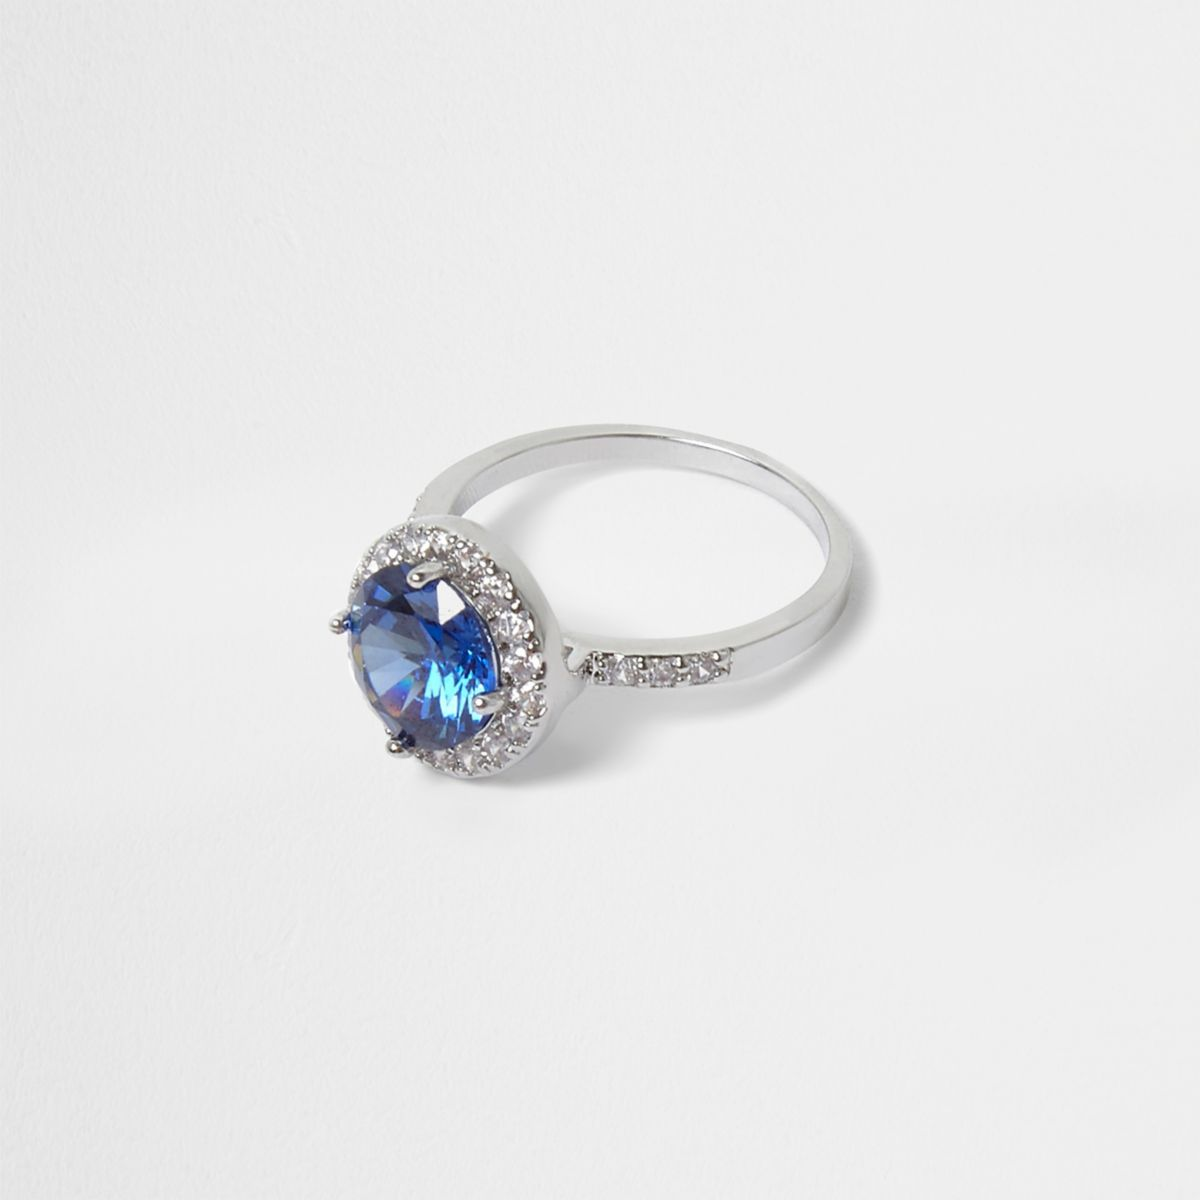 Silver tone blue diamante ring